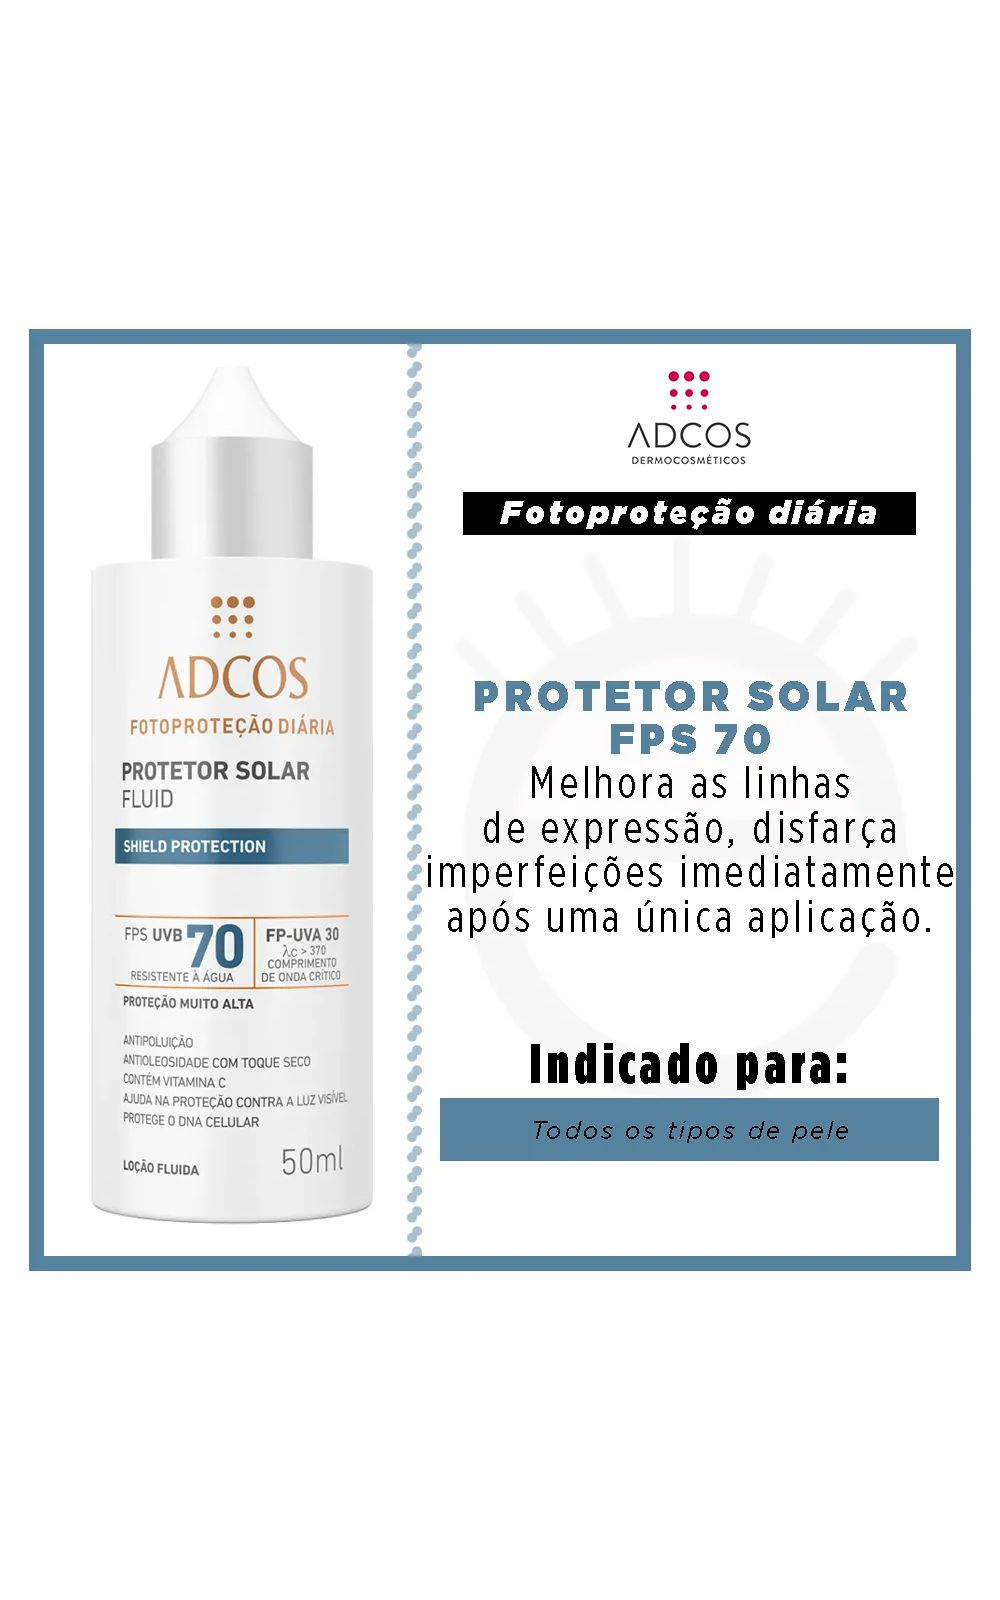 Foto 2 - Protetor Solar Shield Protection FPS 70 Fluid Incolor Adcos - 50ml